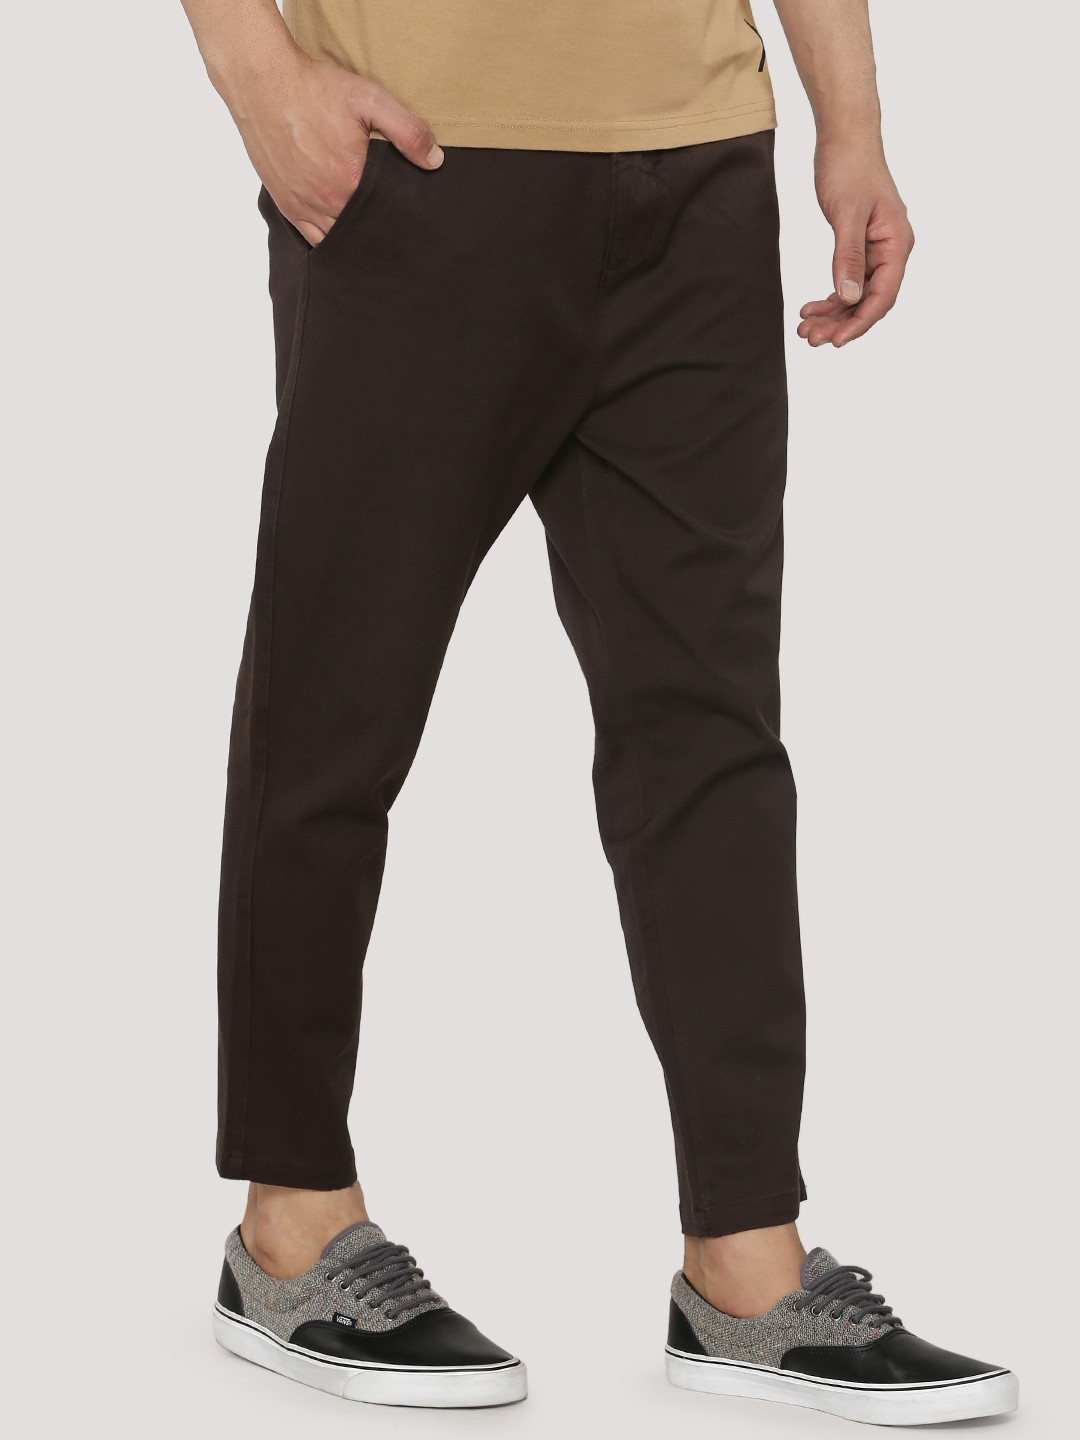 For 30 years and counting, we've designed all styles of dress pants for men. And for contemporary style, our slim fit dress pants are Monday-to-Friday essentials. We went the extra mile and offer them in a range of fabrics and colors – from versatile black to nautical navy, and (of course) classic khaki.